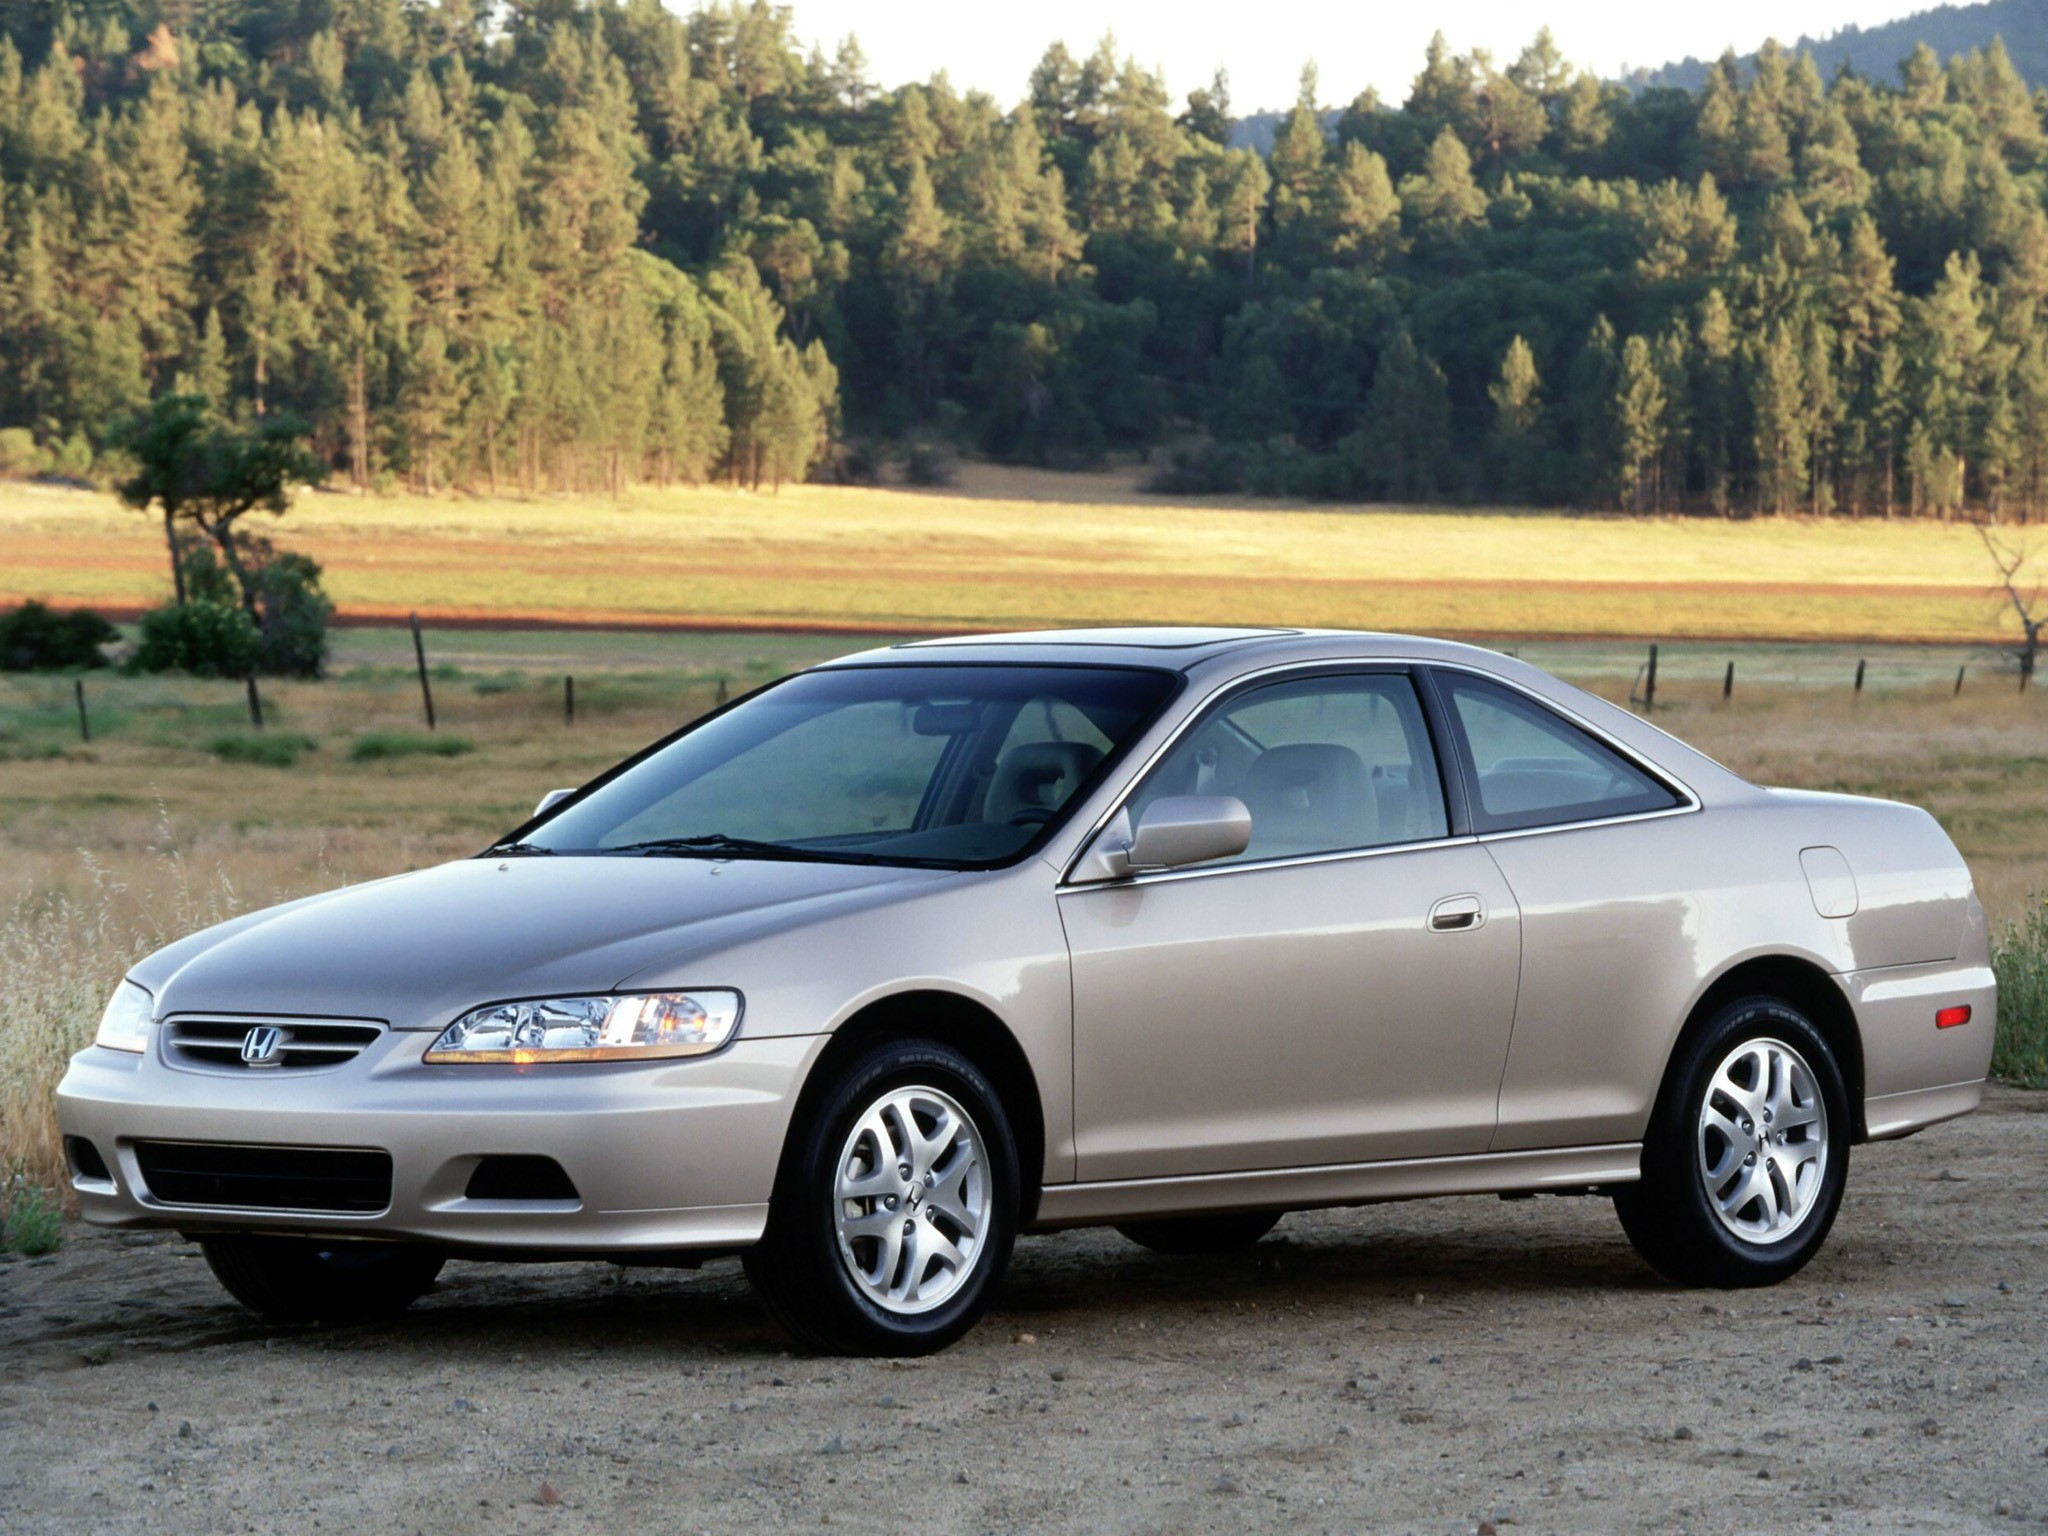 Honda Accord Coupe on 1996 Honda Accord Engine Diagram